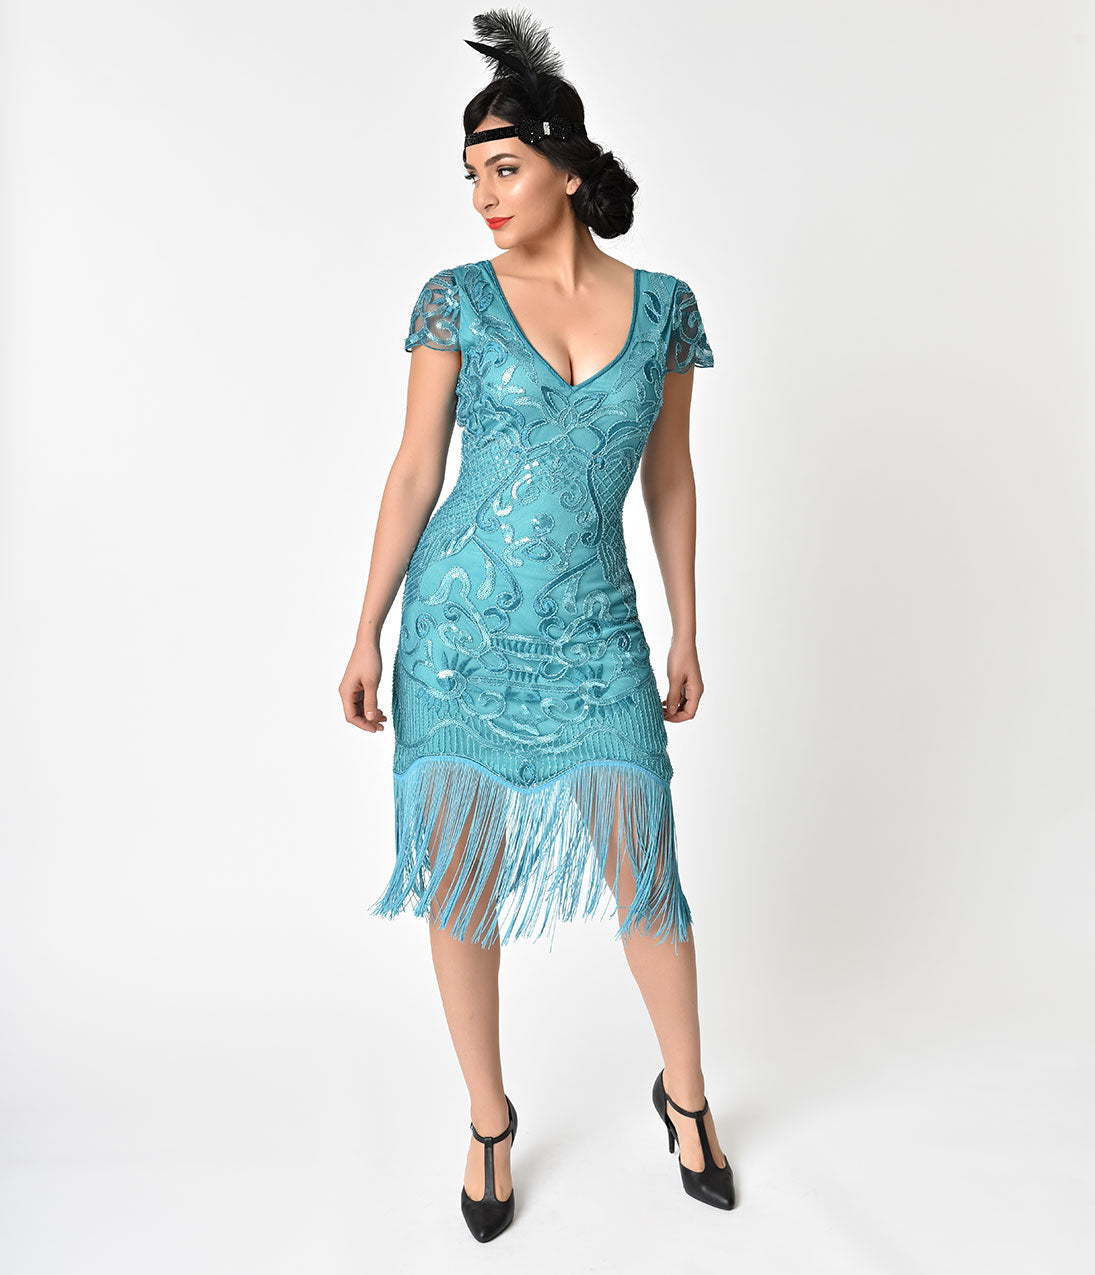 Roaring 20s Costumes- Flapper Costumes, Gangster Costumes Unique Vintage 1920S Style Turquoise Beaded Fringe Aurore Flapper Dress $40.00 AT vintagedancer.com